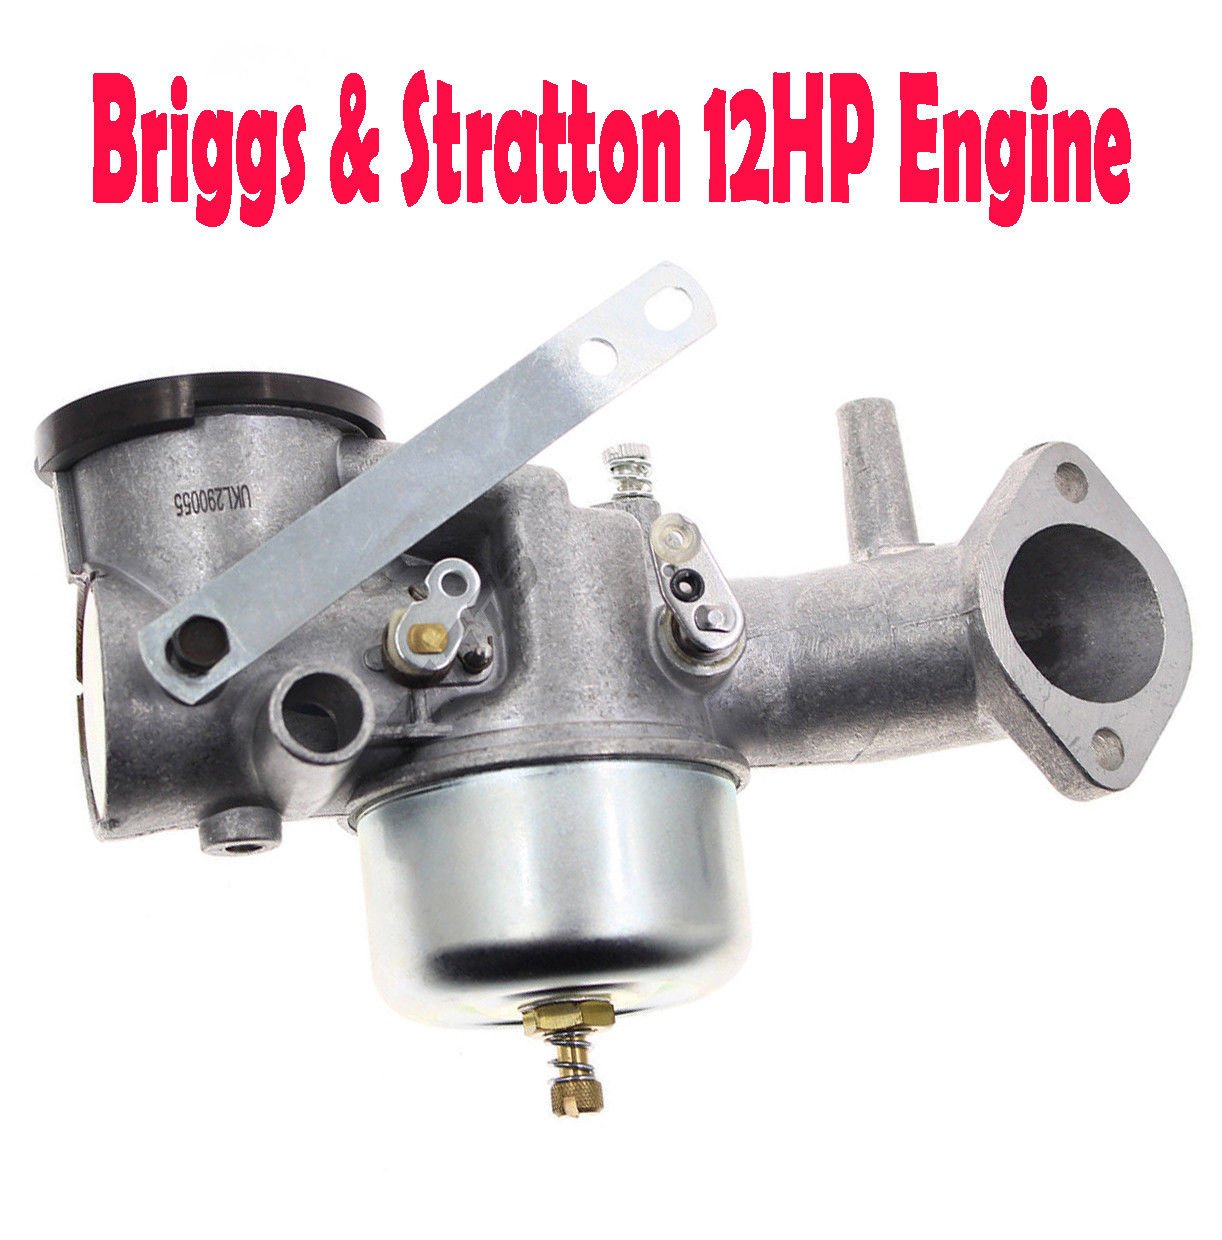 Carburetor Carb for Briggs & Stratton 12HP Engine 491031 490499 491026 & 281707